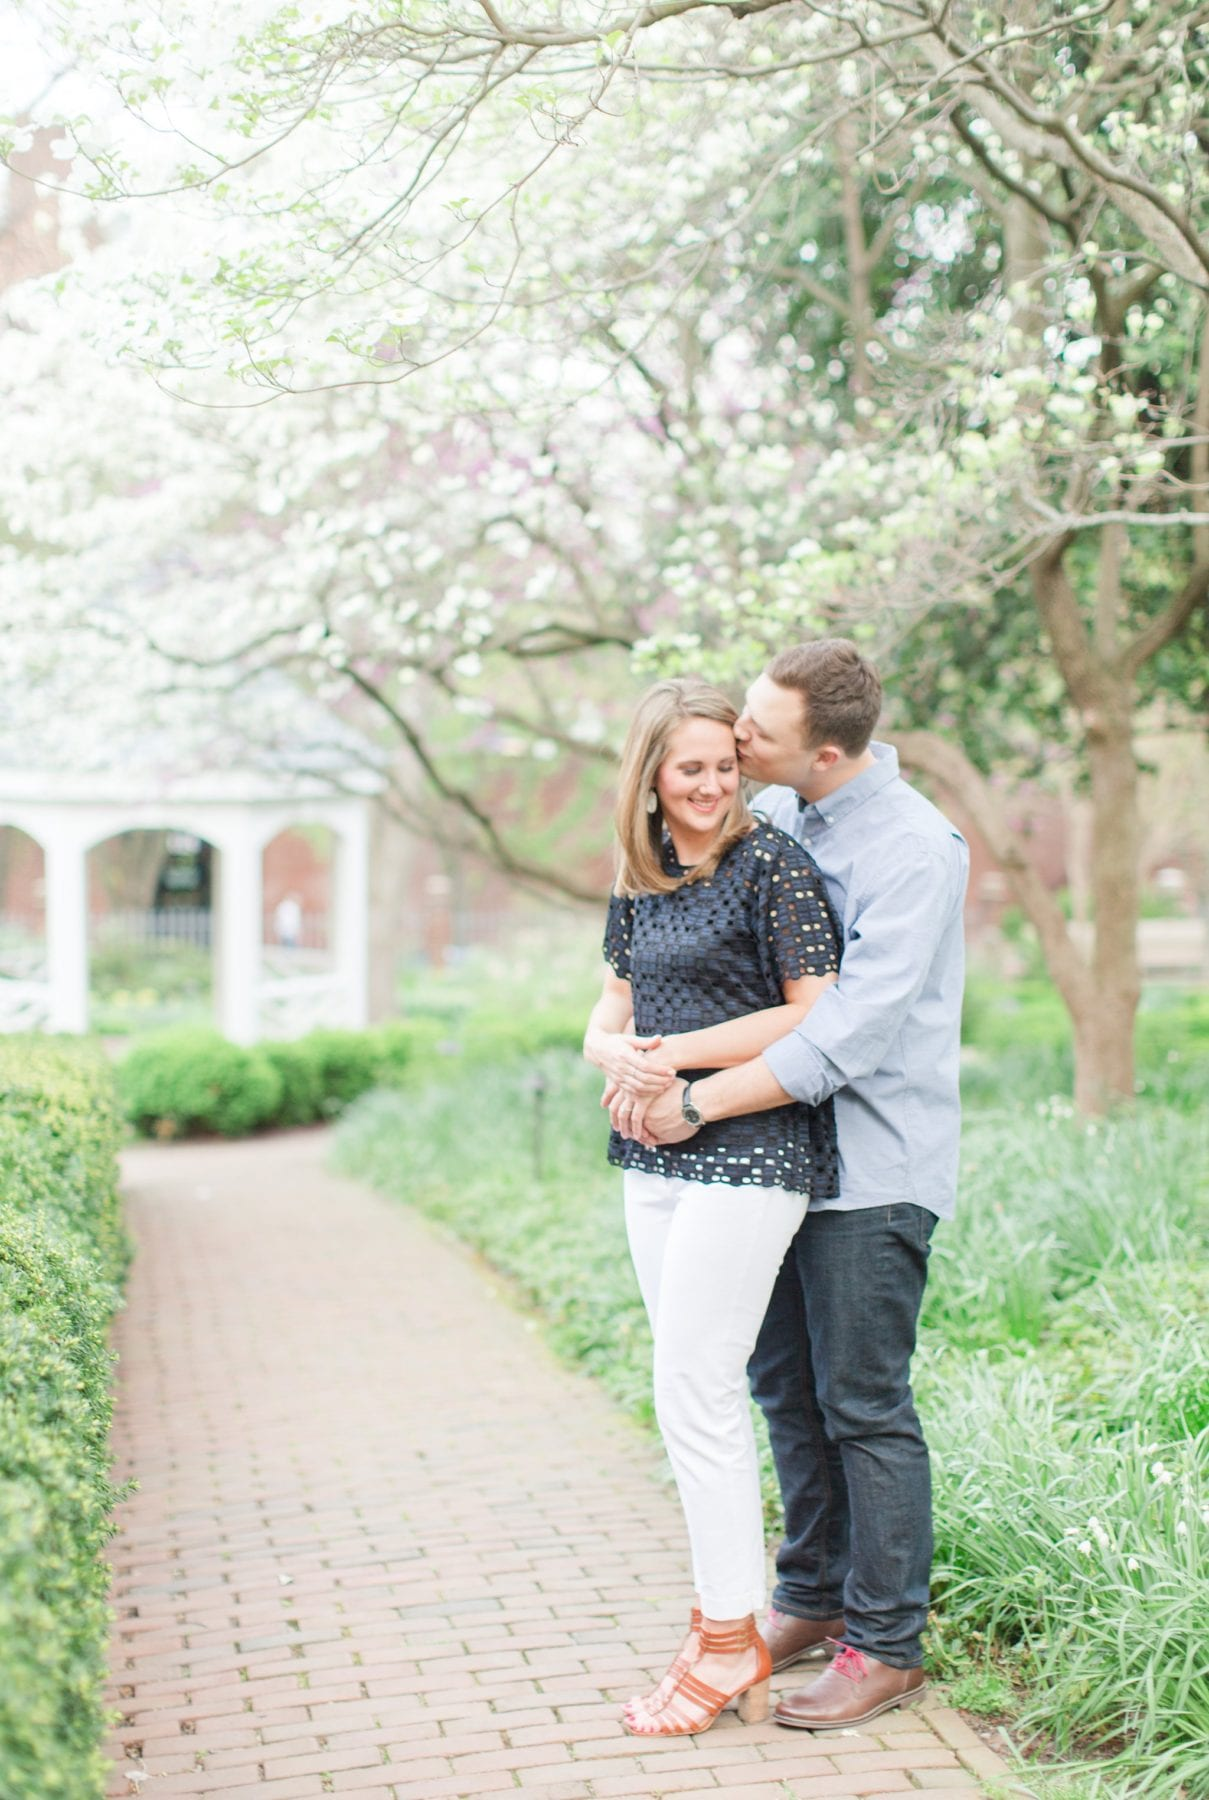 Springtime Old Town Alexandria Engagement Session Matt & Maxie Megan Kelsey Photography-238.jpg